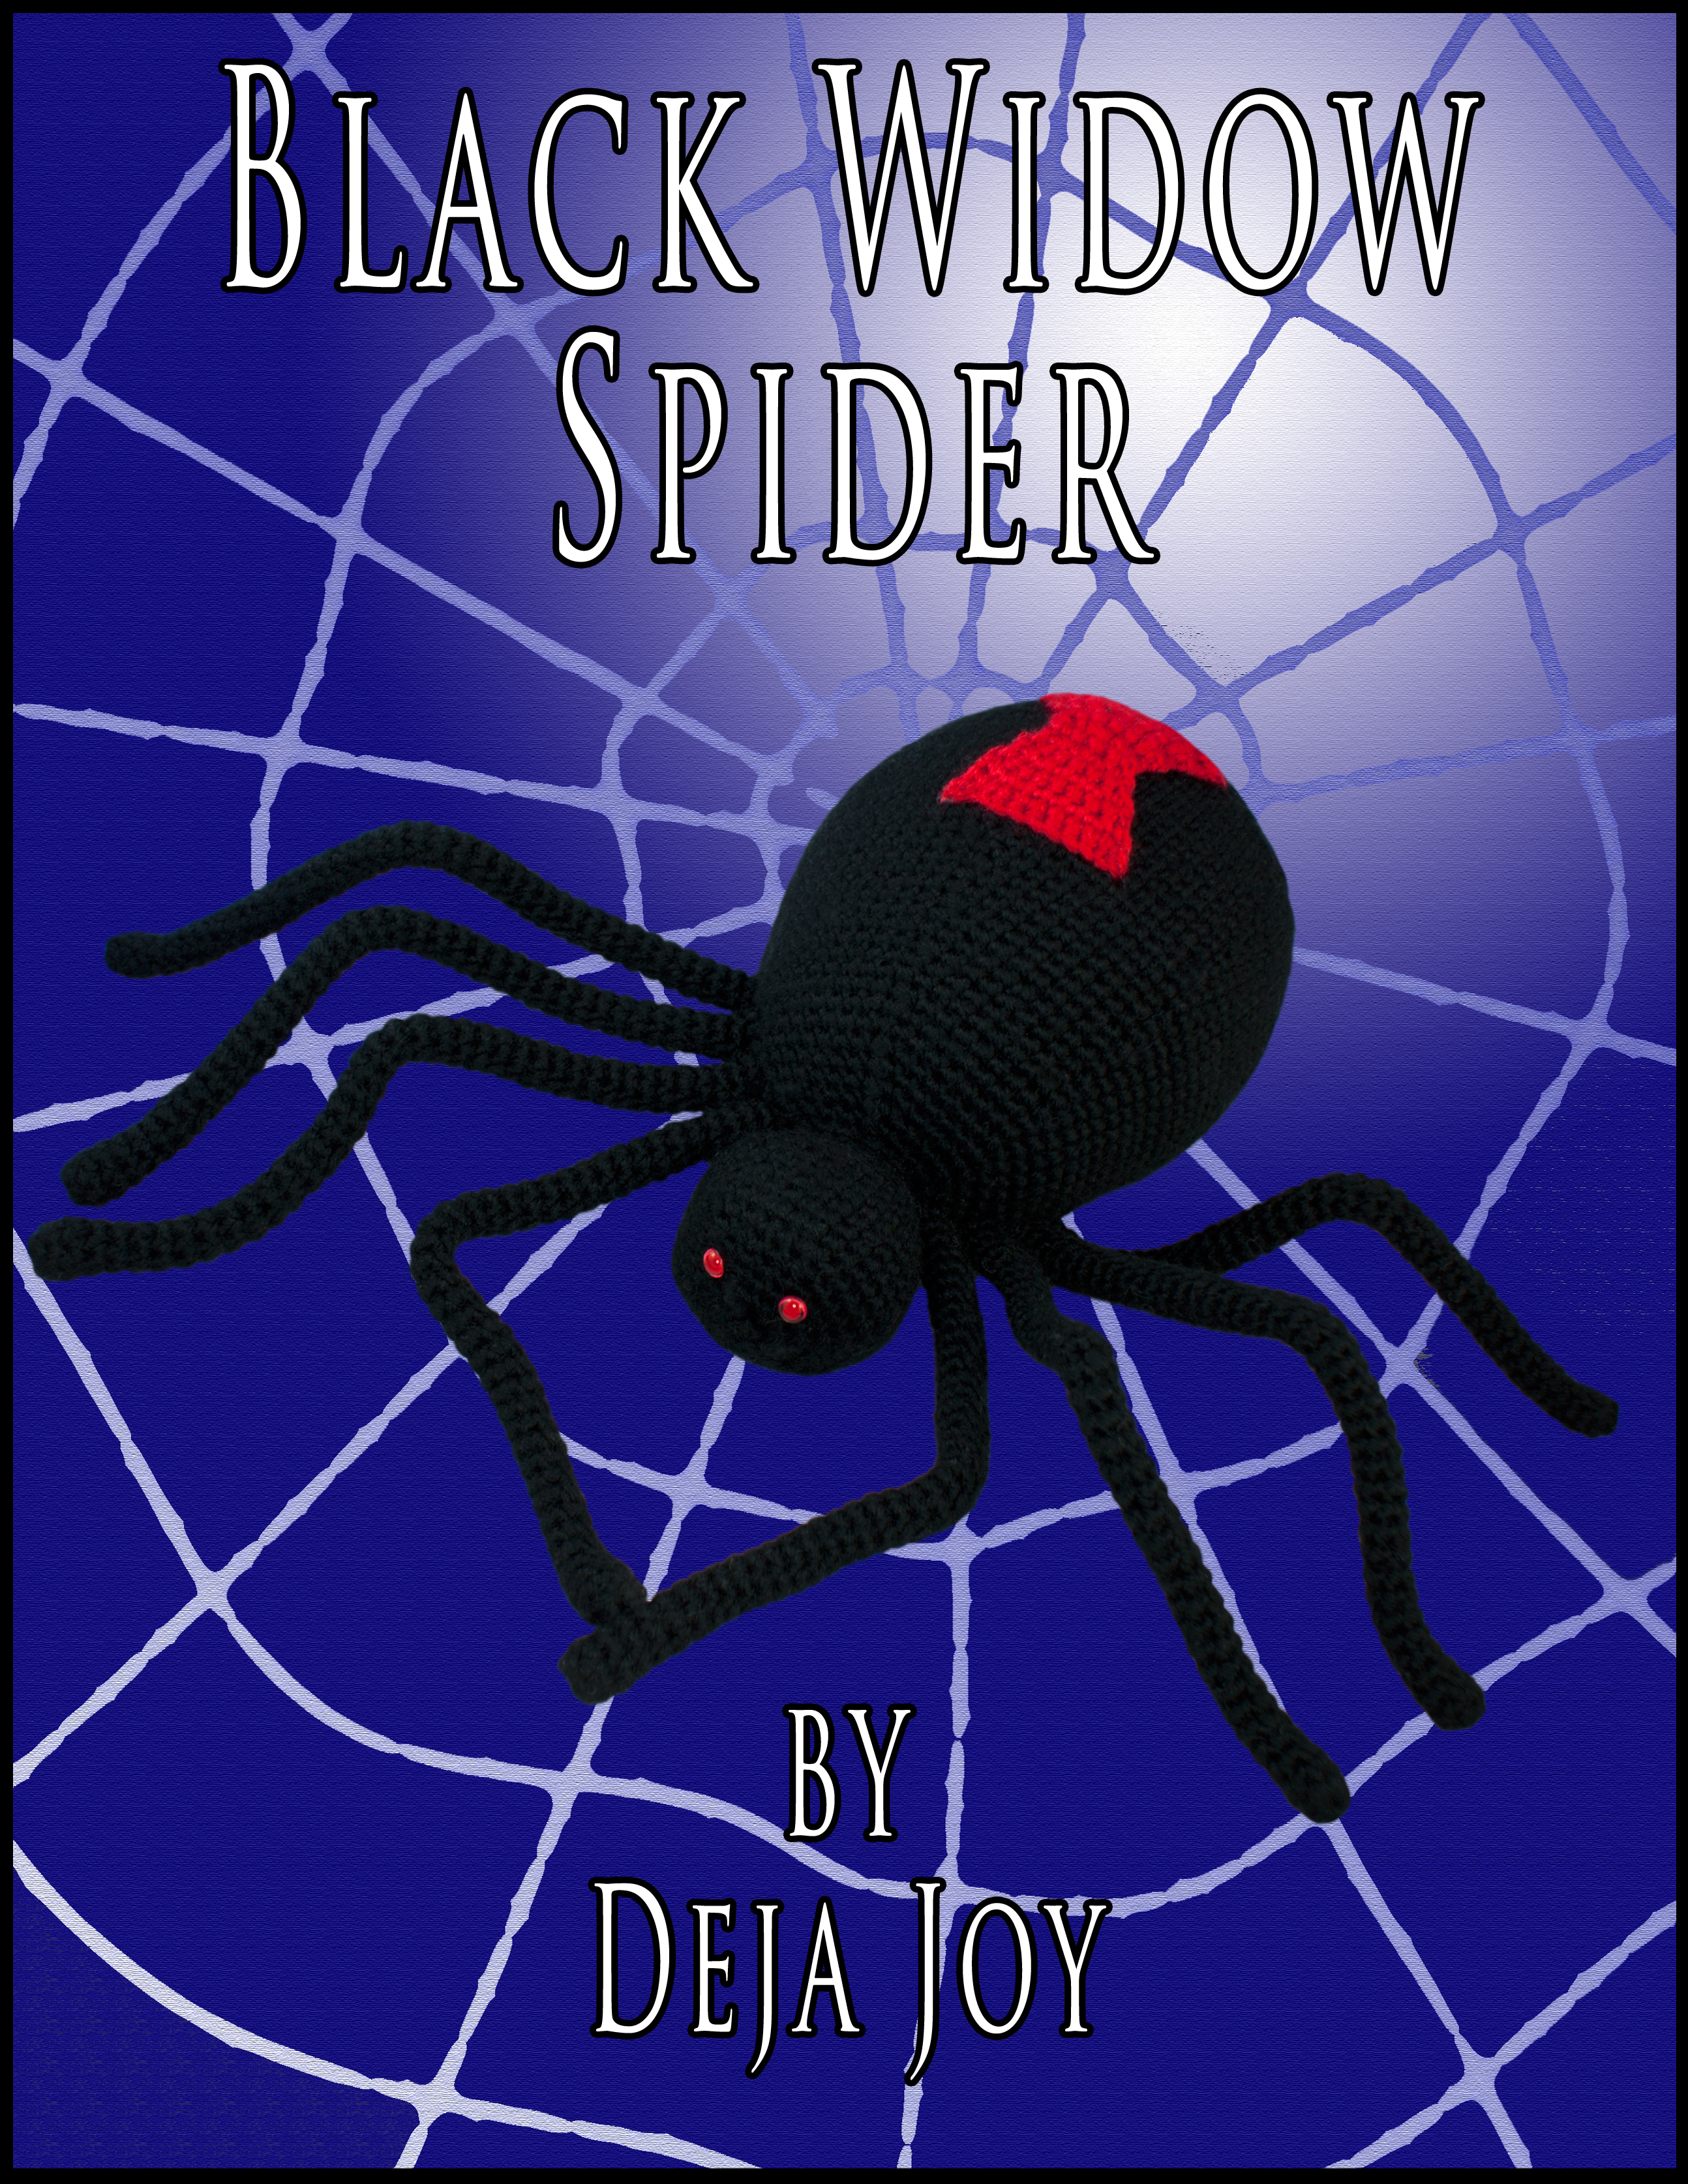 Black Widow Spider An Ebook By Deja Joy